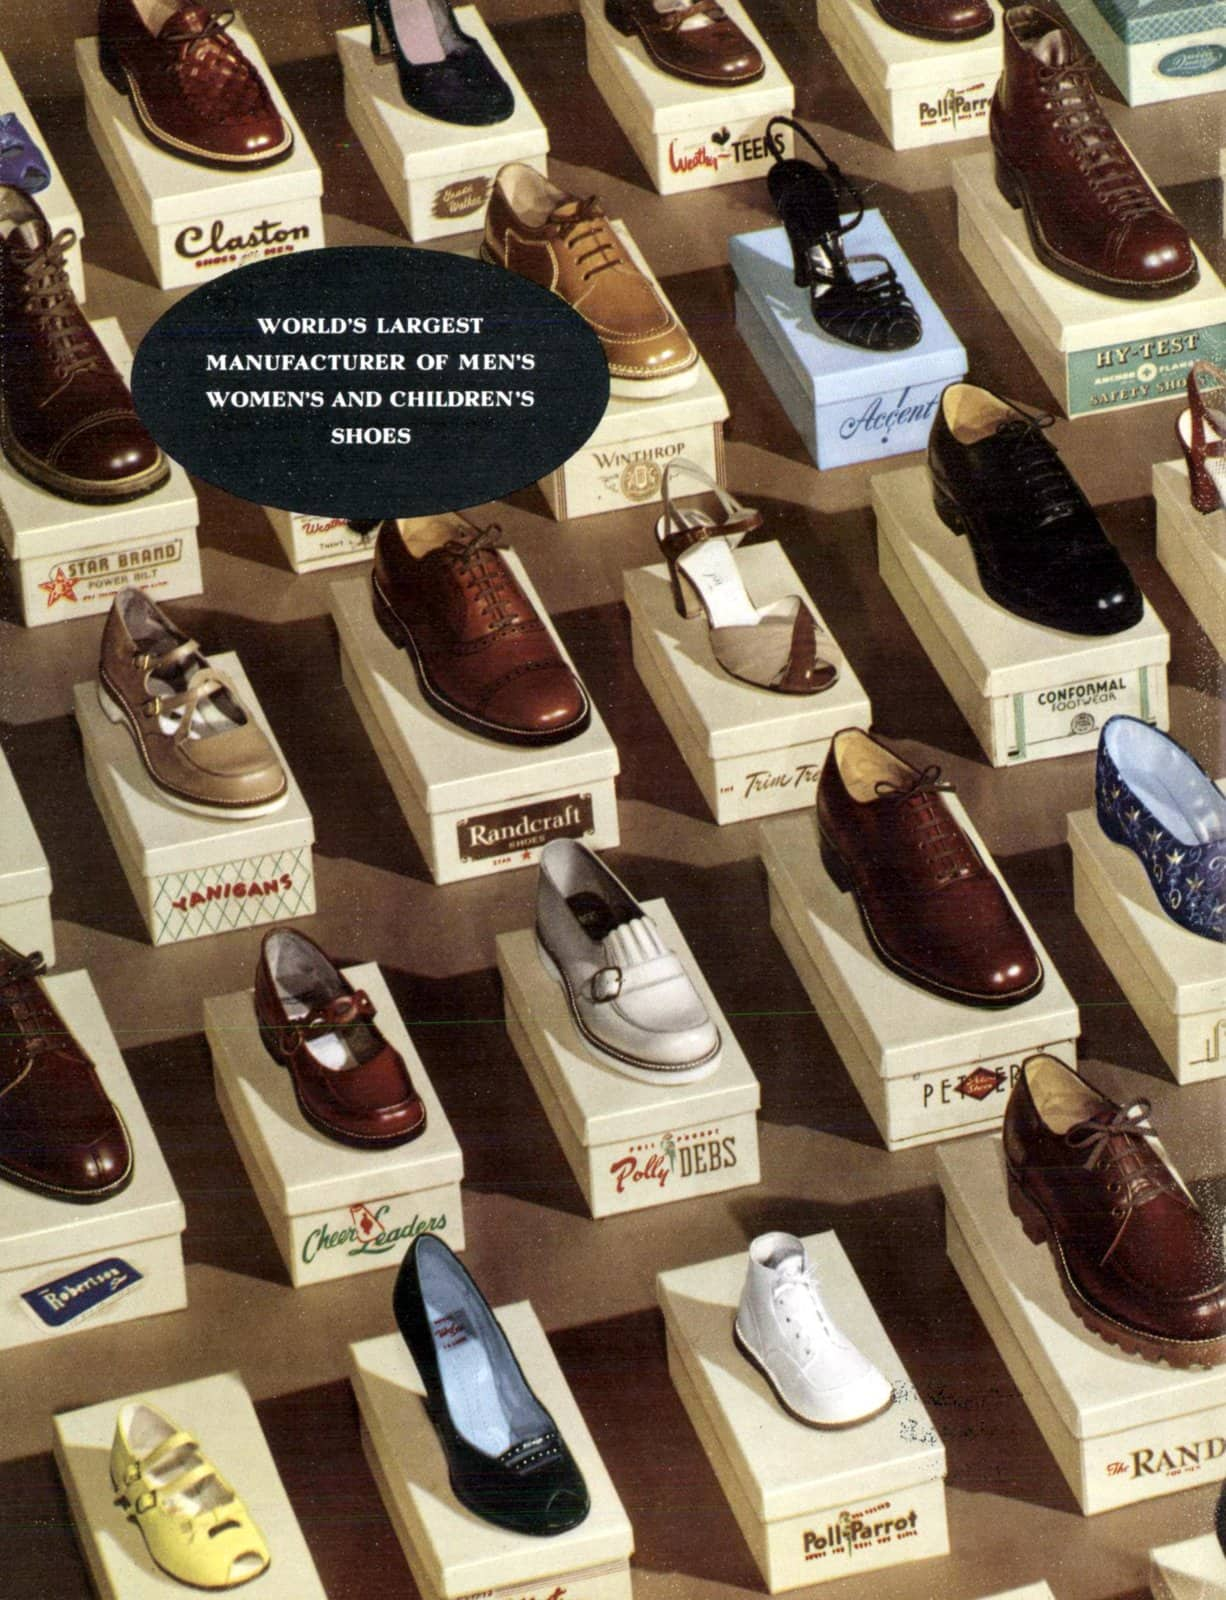 Vintage shoe brands and styles from 1951 (1)